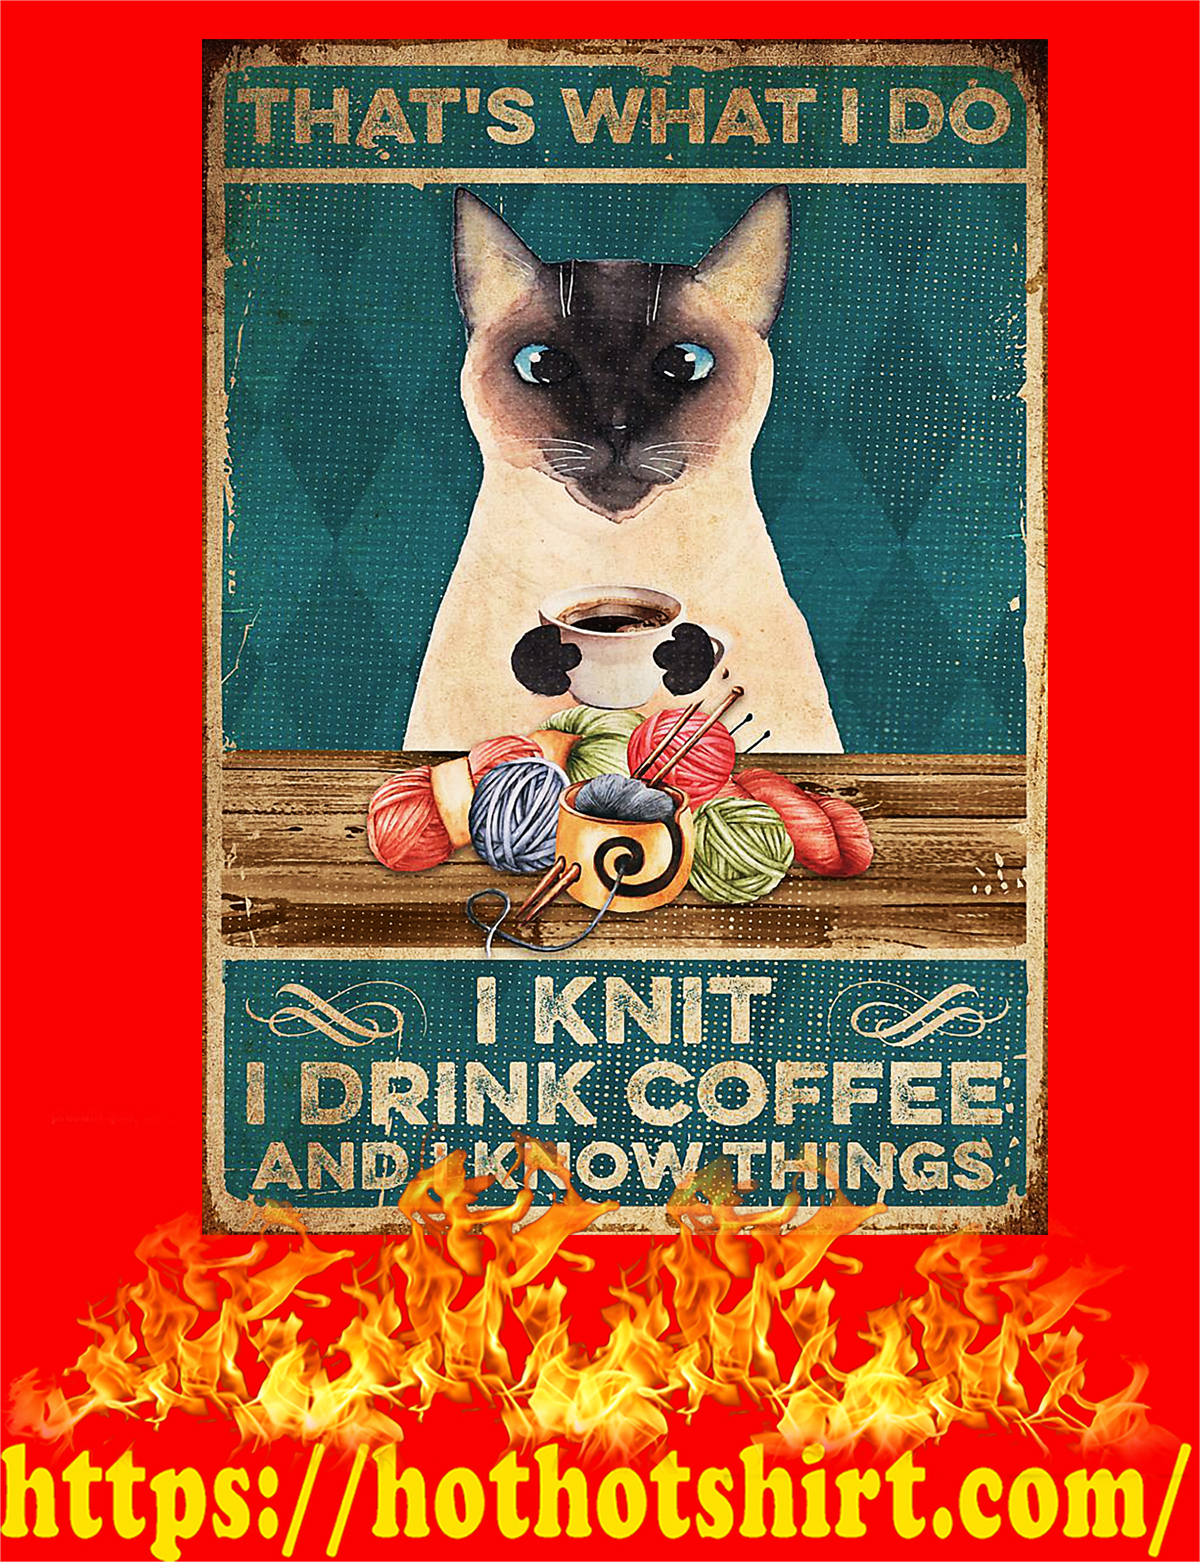 Cat That's what i do i knit i drink coffee and i know things poster - A4